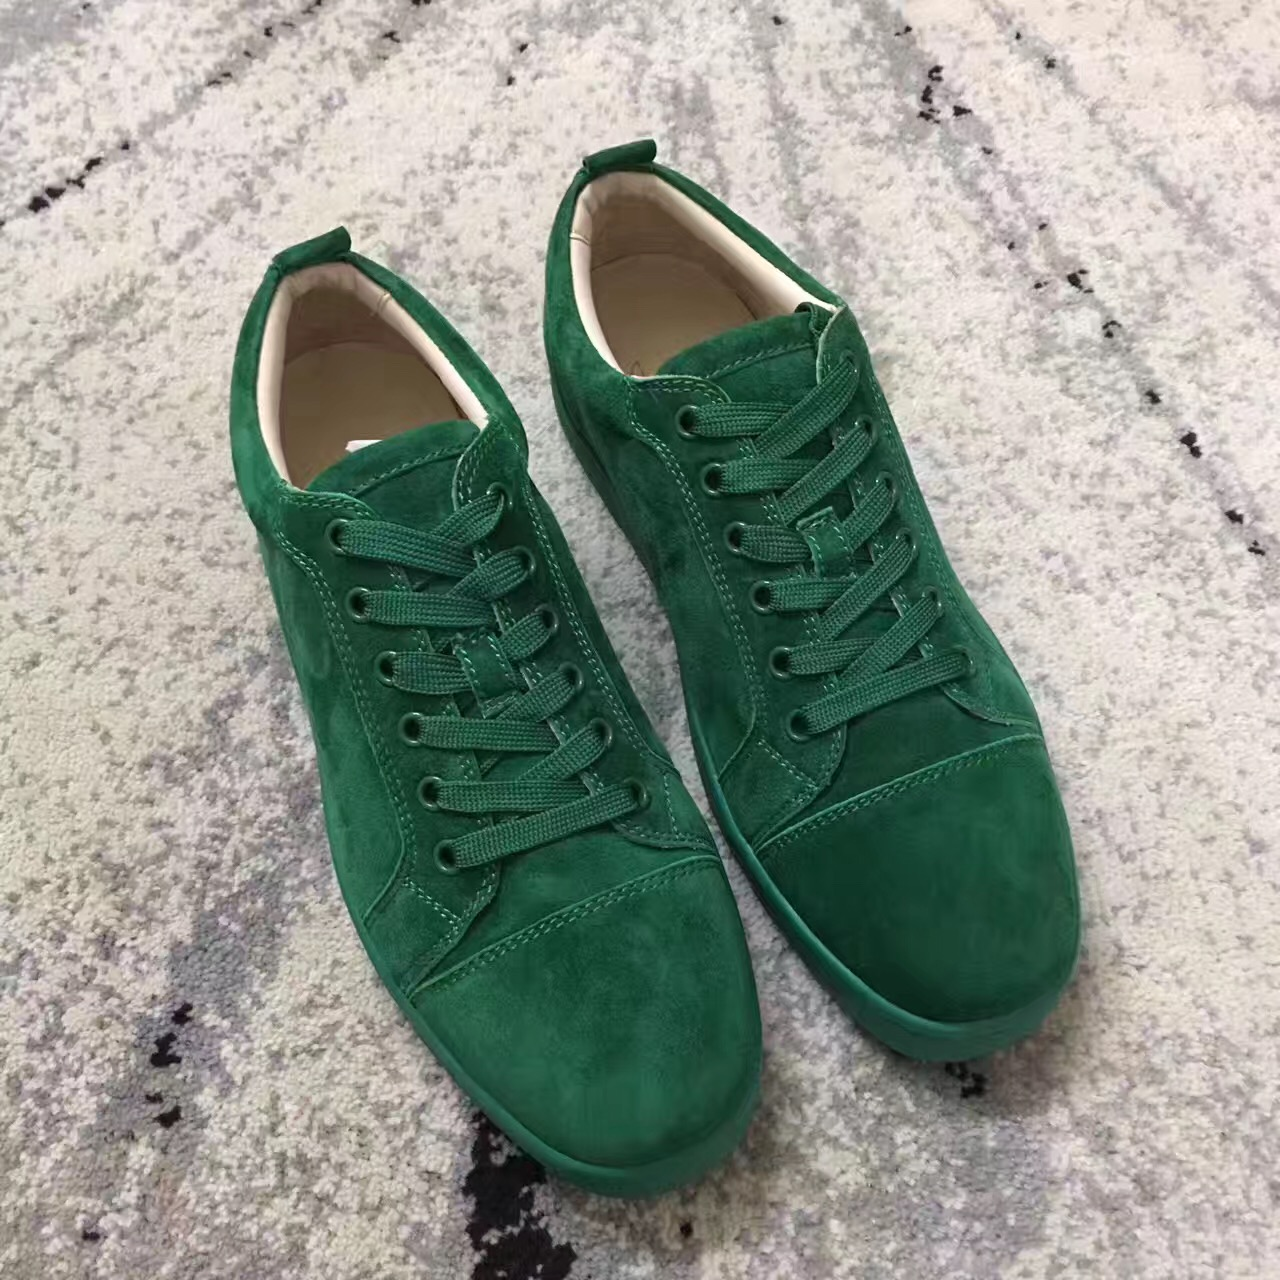 red bottom shoes for men - Christian Louboutin Sneaker Low Top Junior Green  Suede Shoes - red bottoms for men - red bottom sneakers US  280- ... 4f2bab177cc1